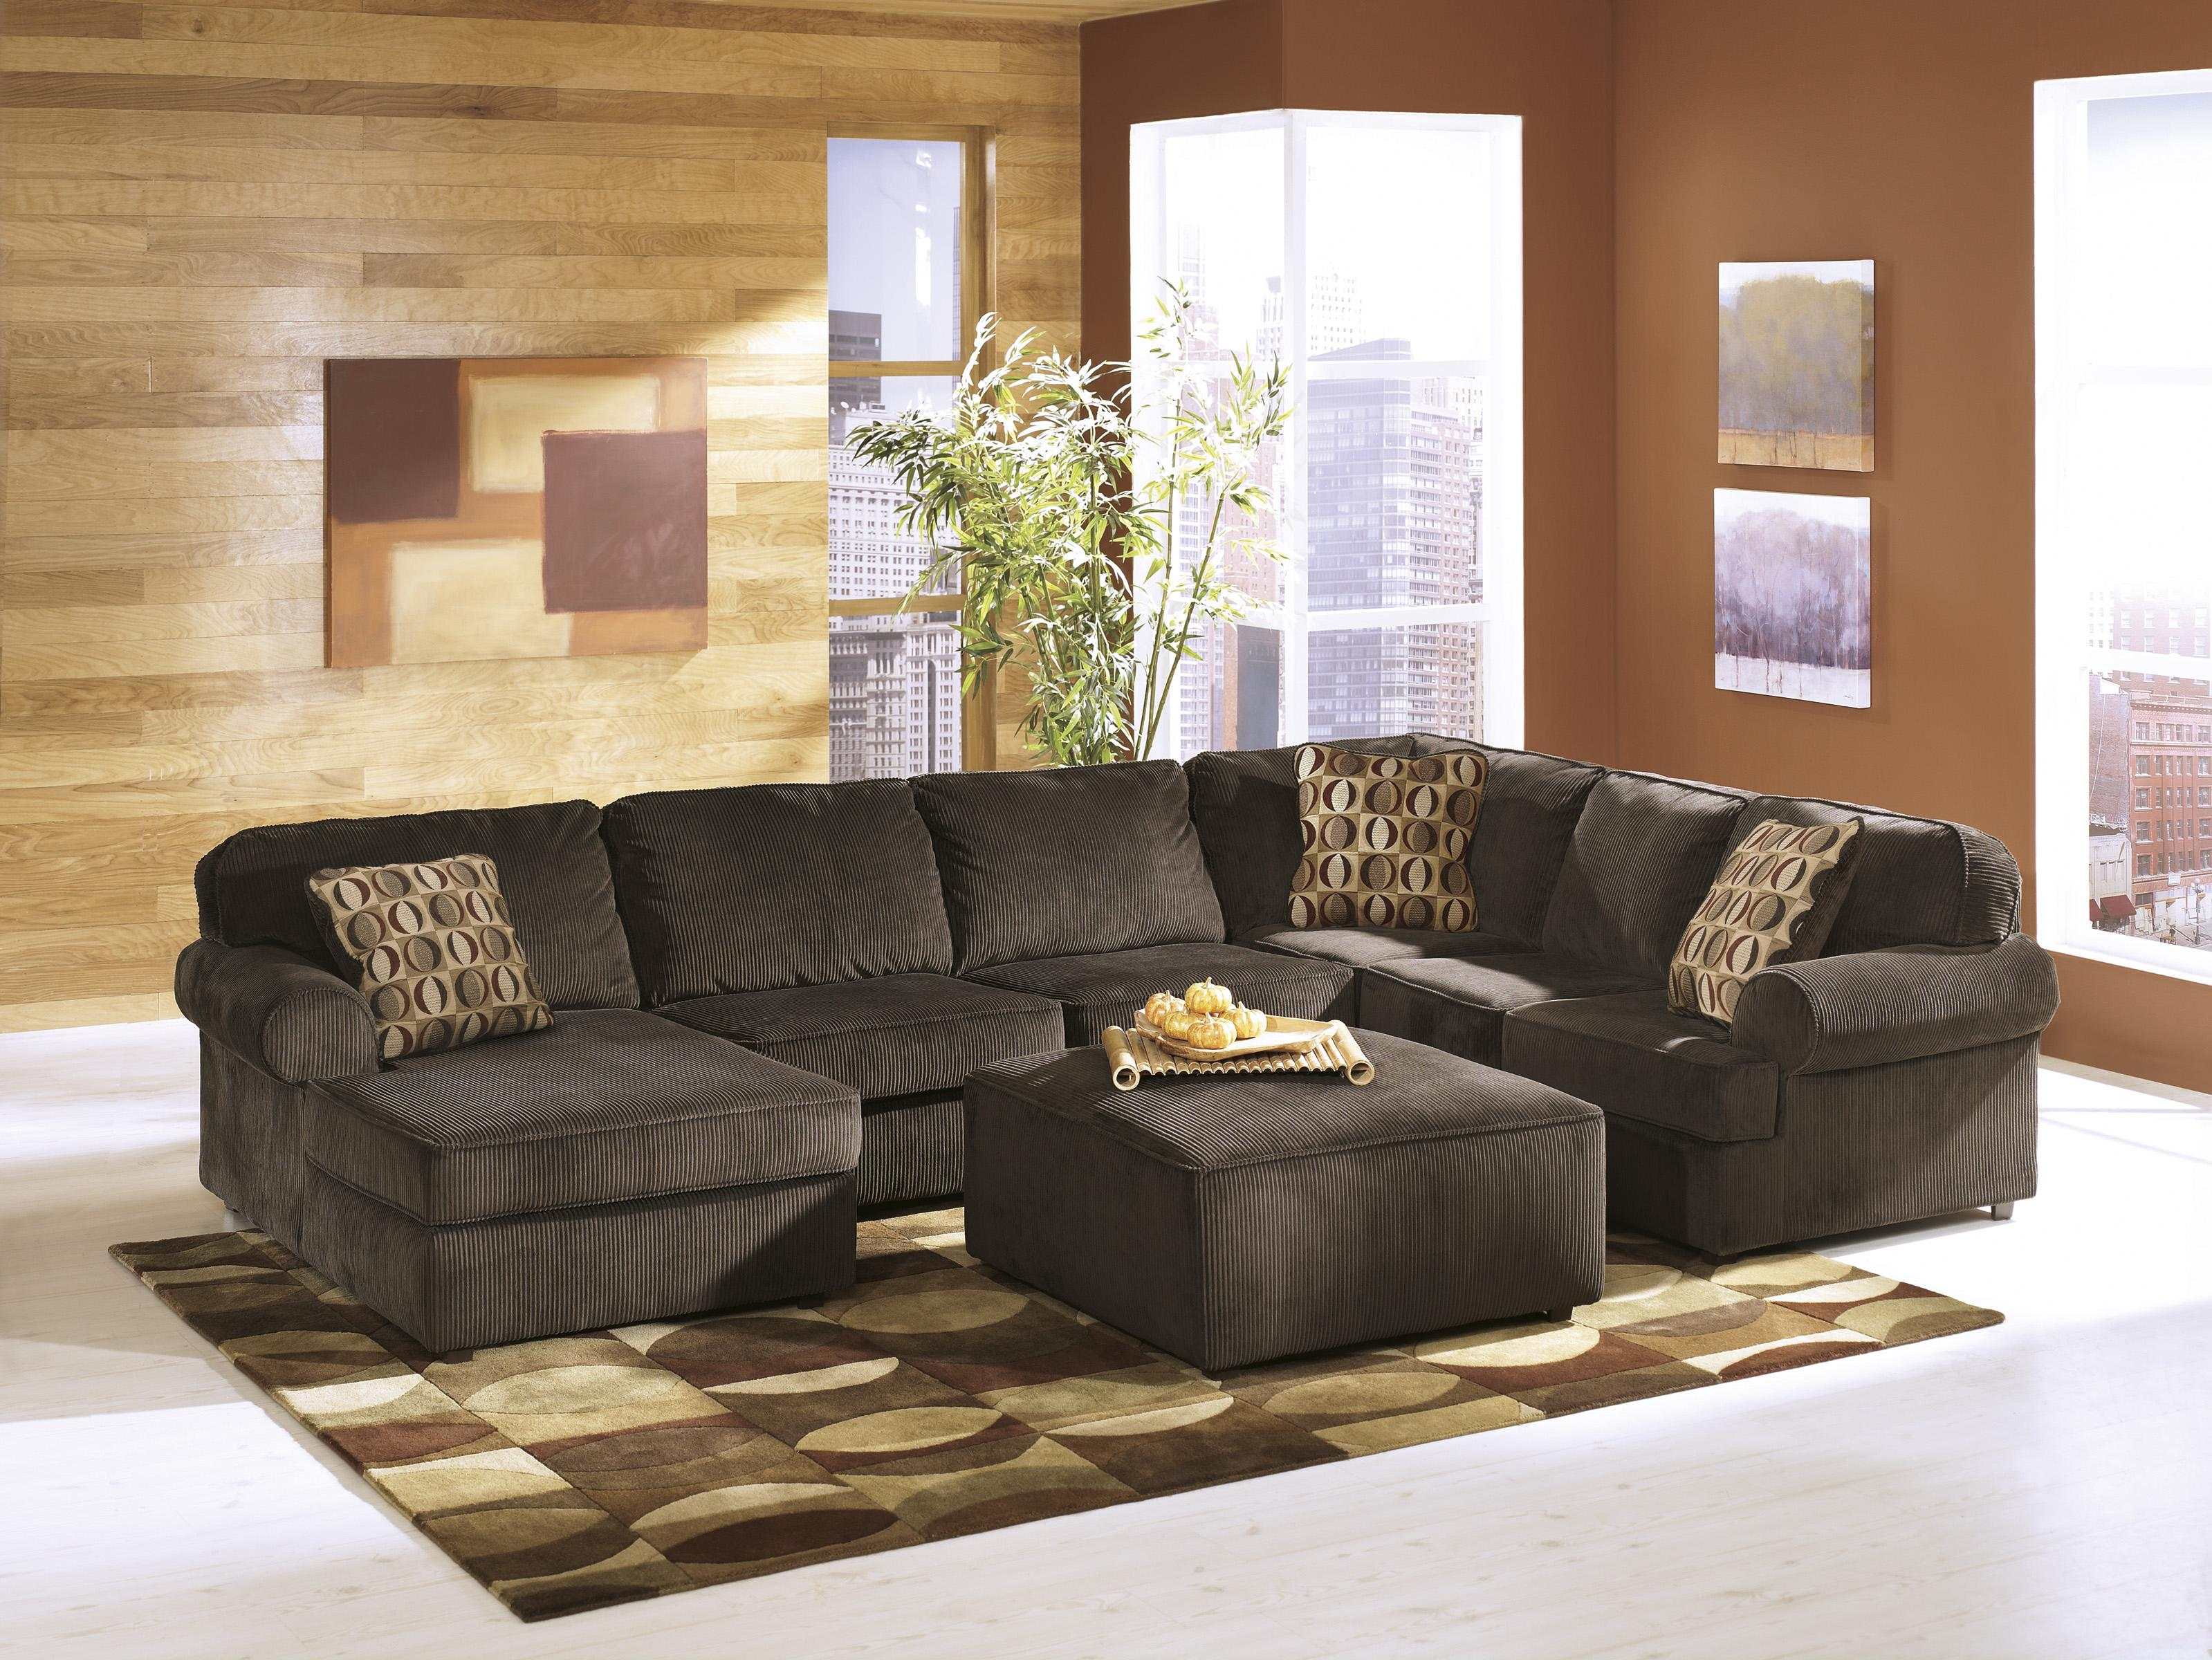 Ashley Furniture Vista - Chocolate Stationary Living Room Group - Item Number: 68404 Living Room Group 1